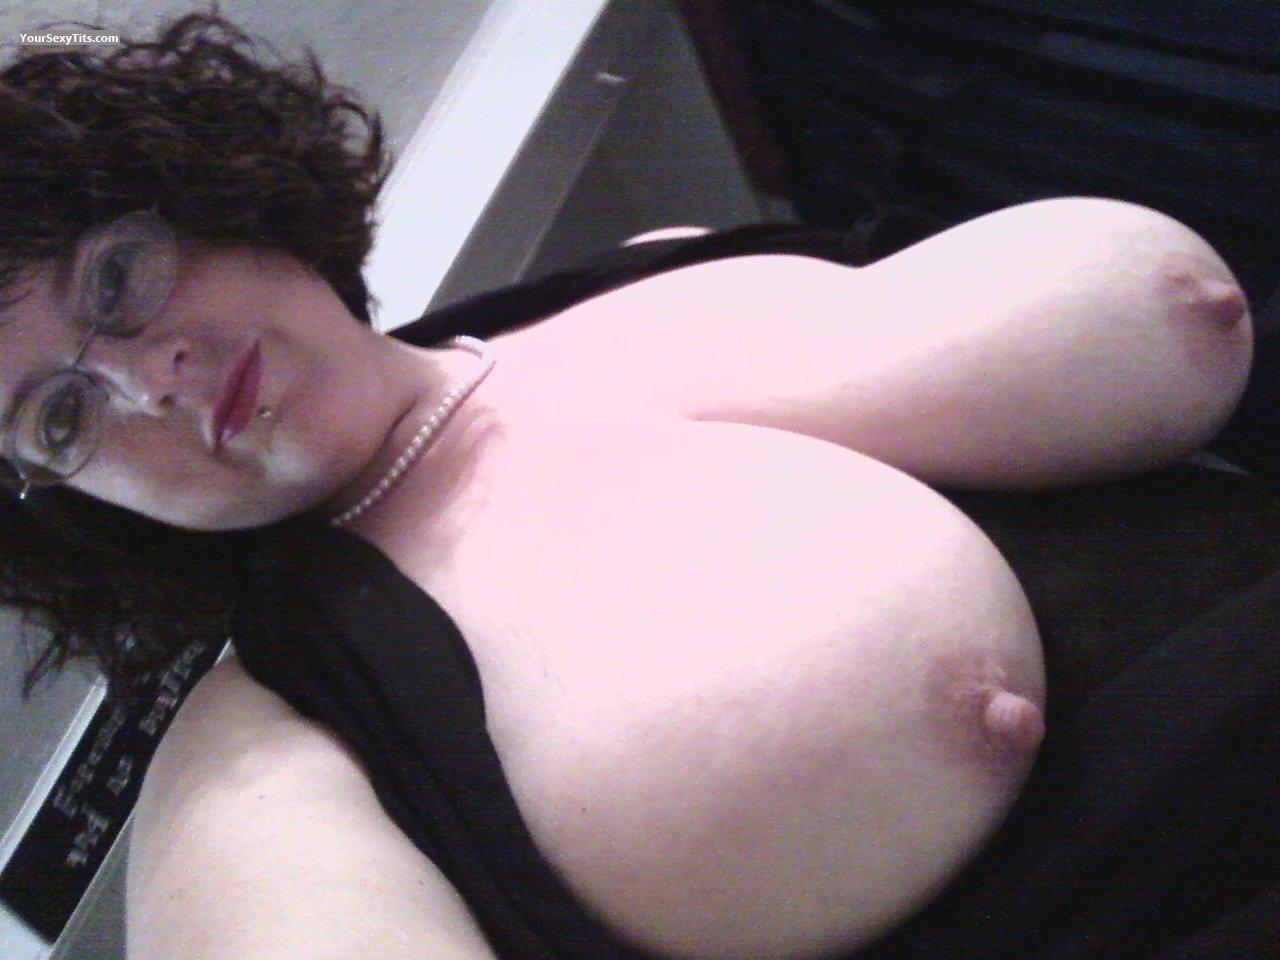 My Extremely big Tits Topless Selfie by PeachesnCream